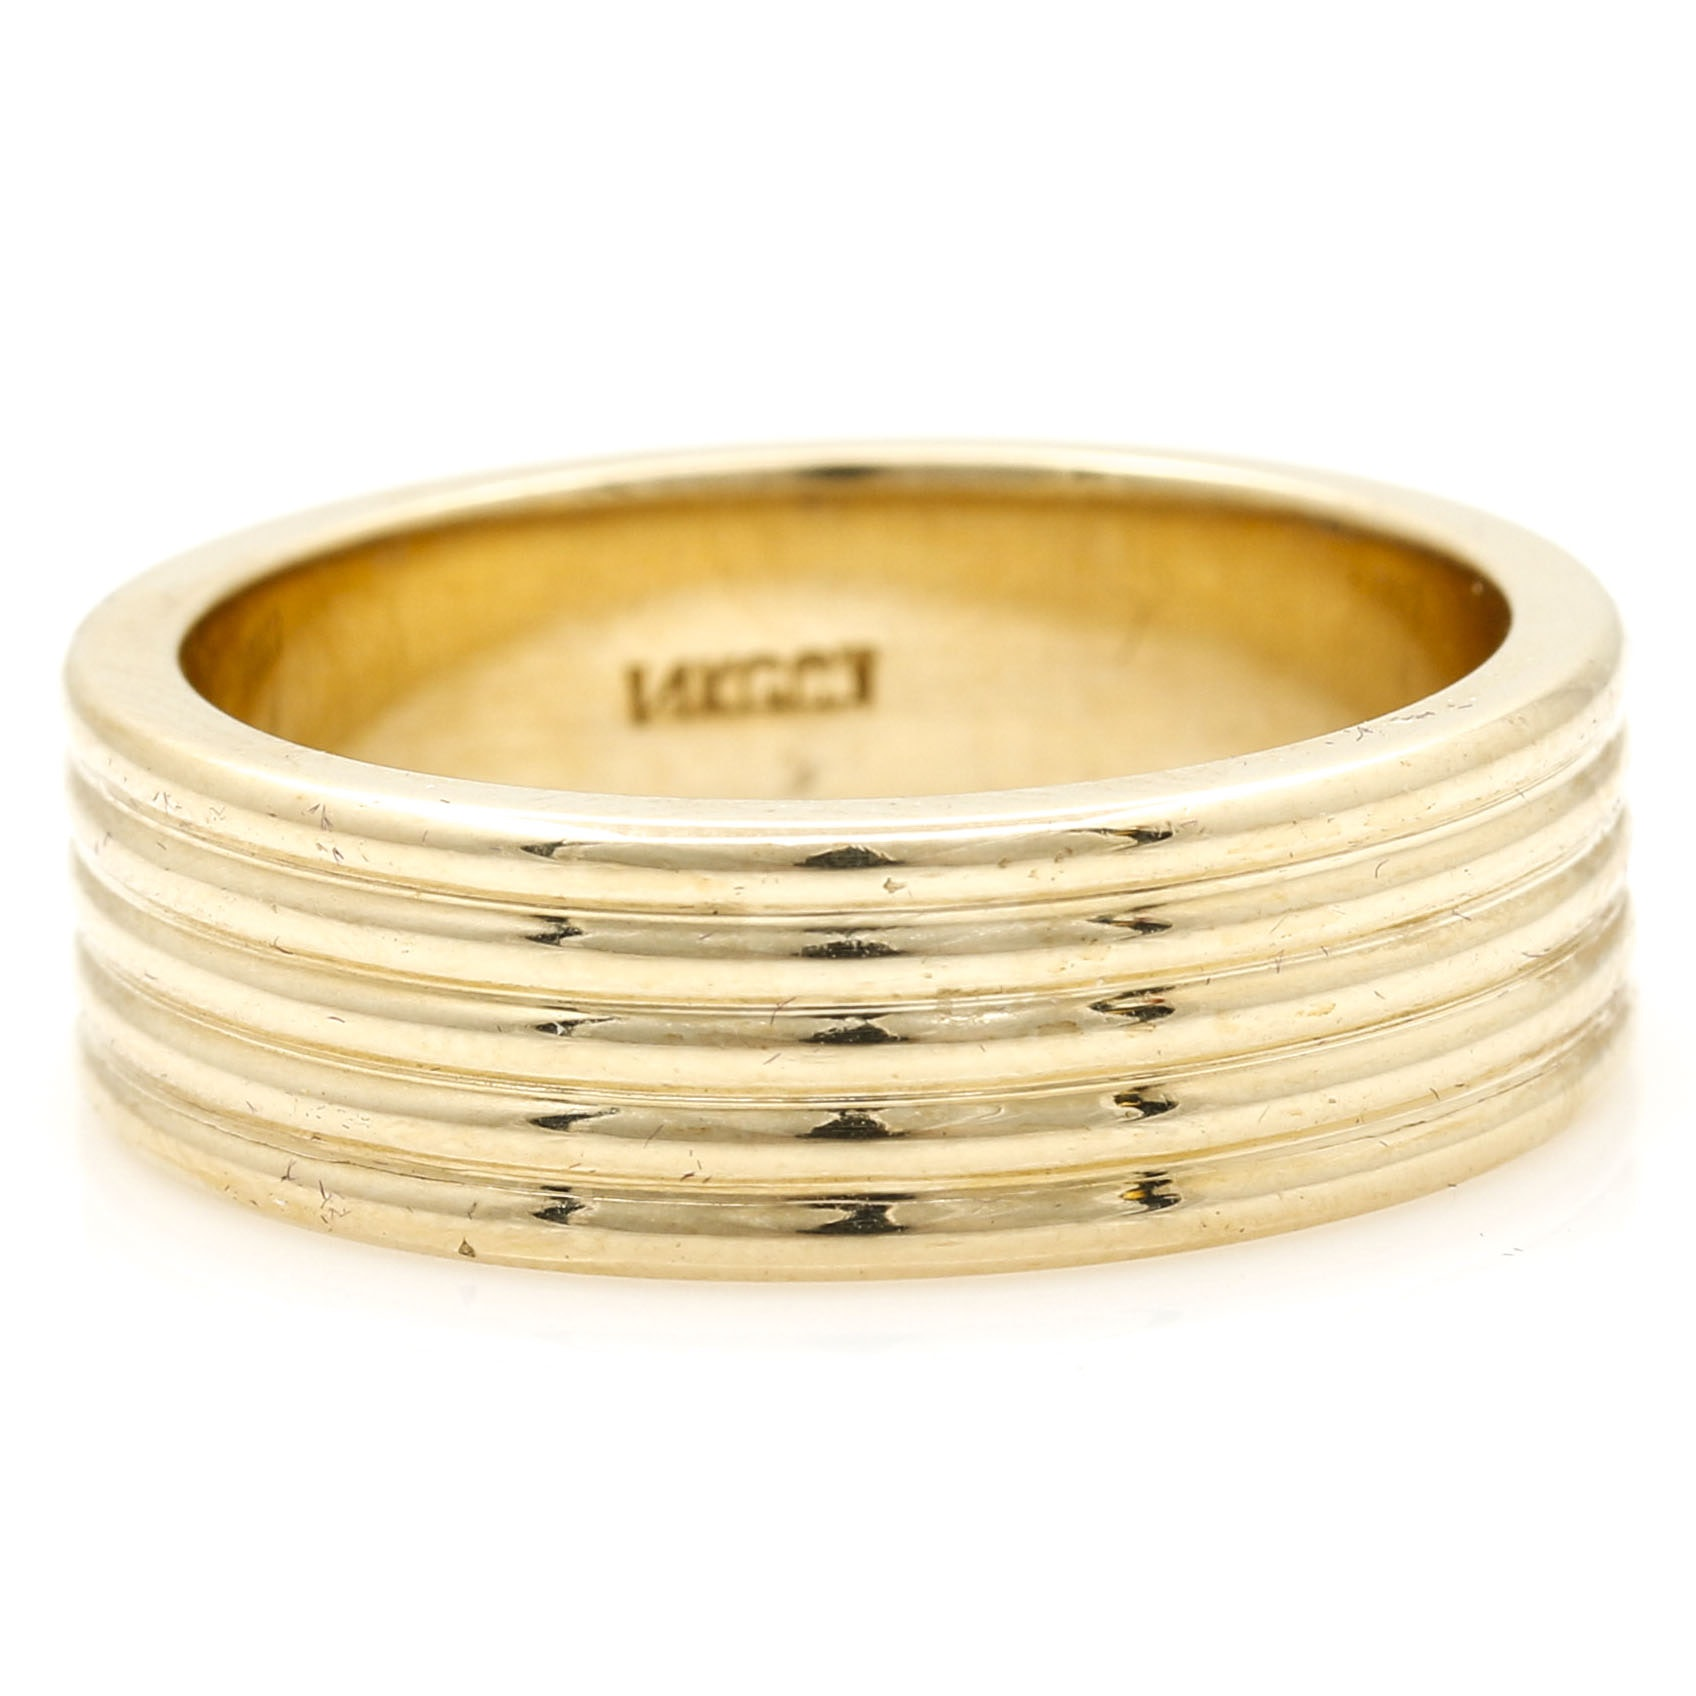 14K Yellow Gold Men's Band